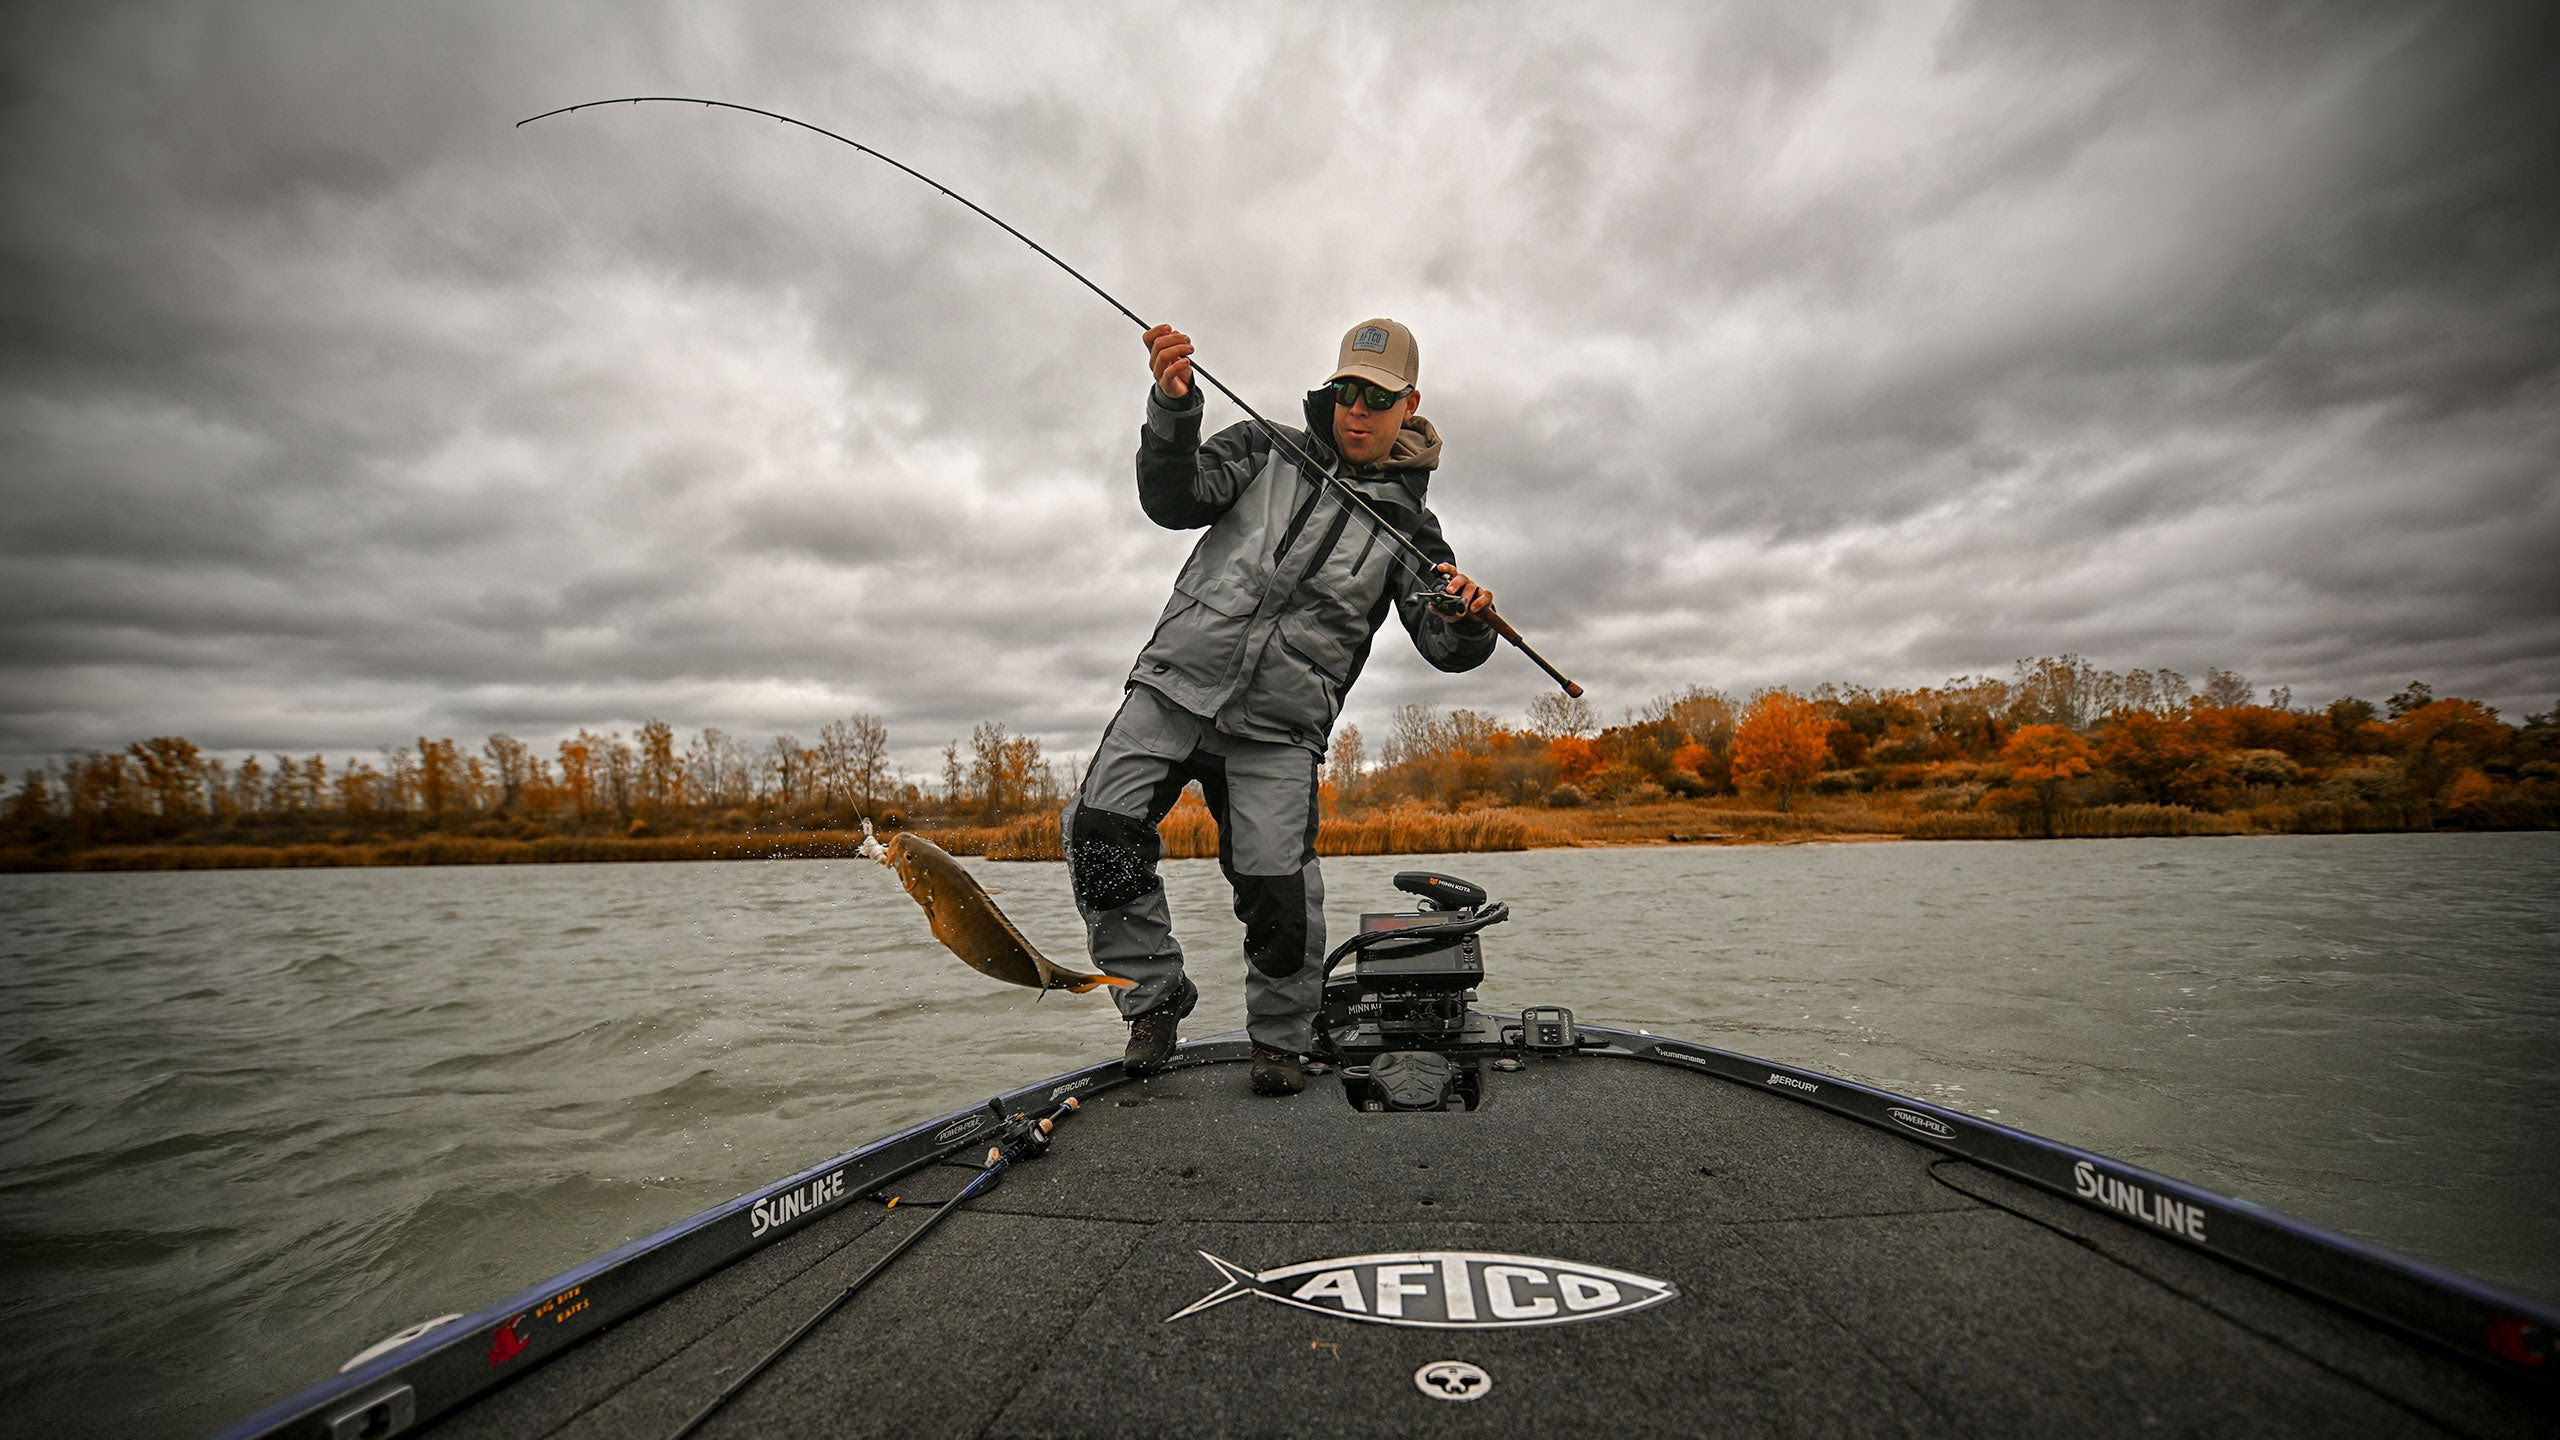 AFTCO Pro Garrett Paquette fishing in his AFTCO Hydronaut Waterproof Jacket and Bibs